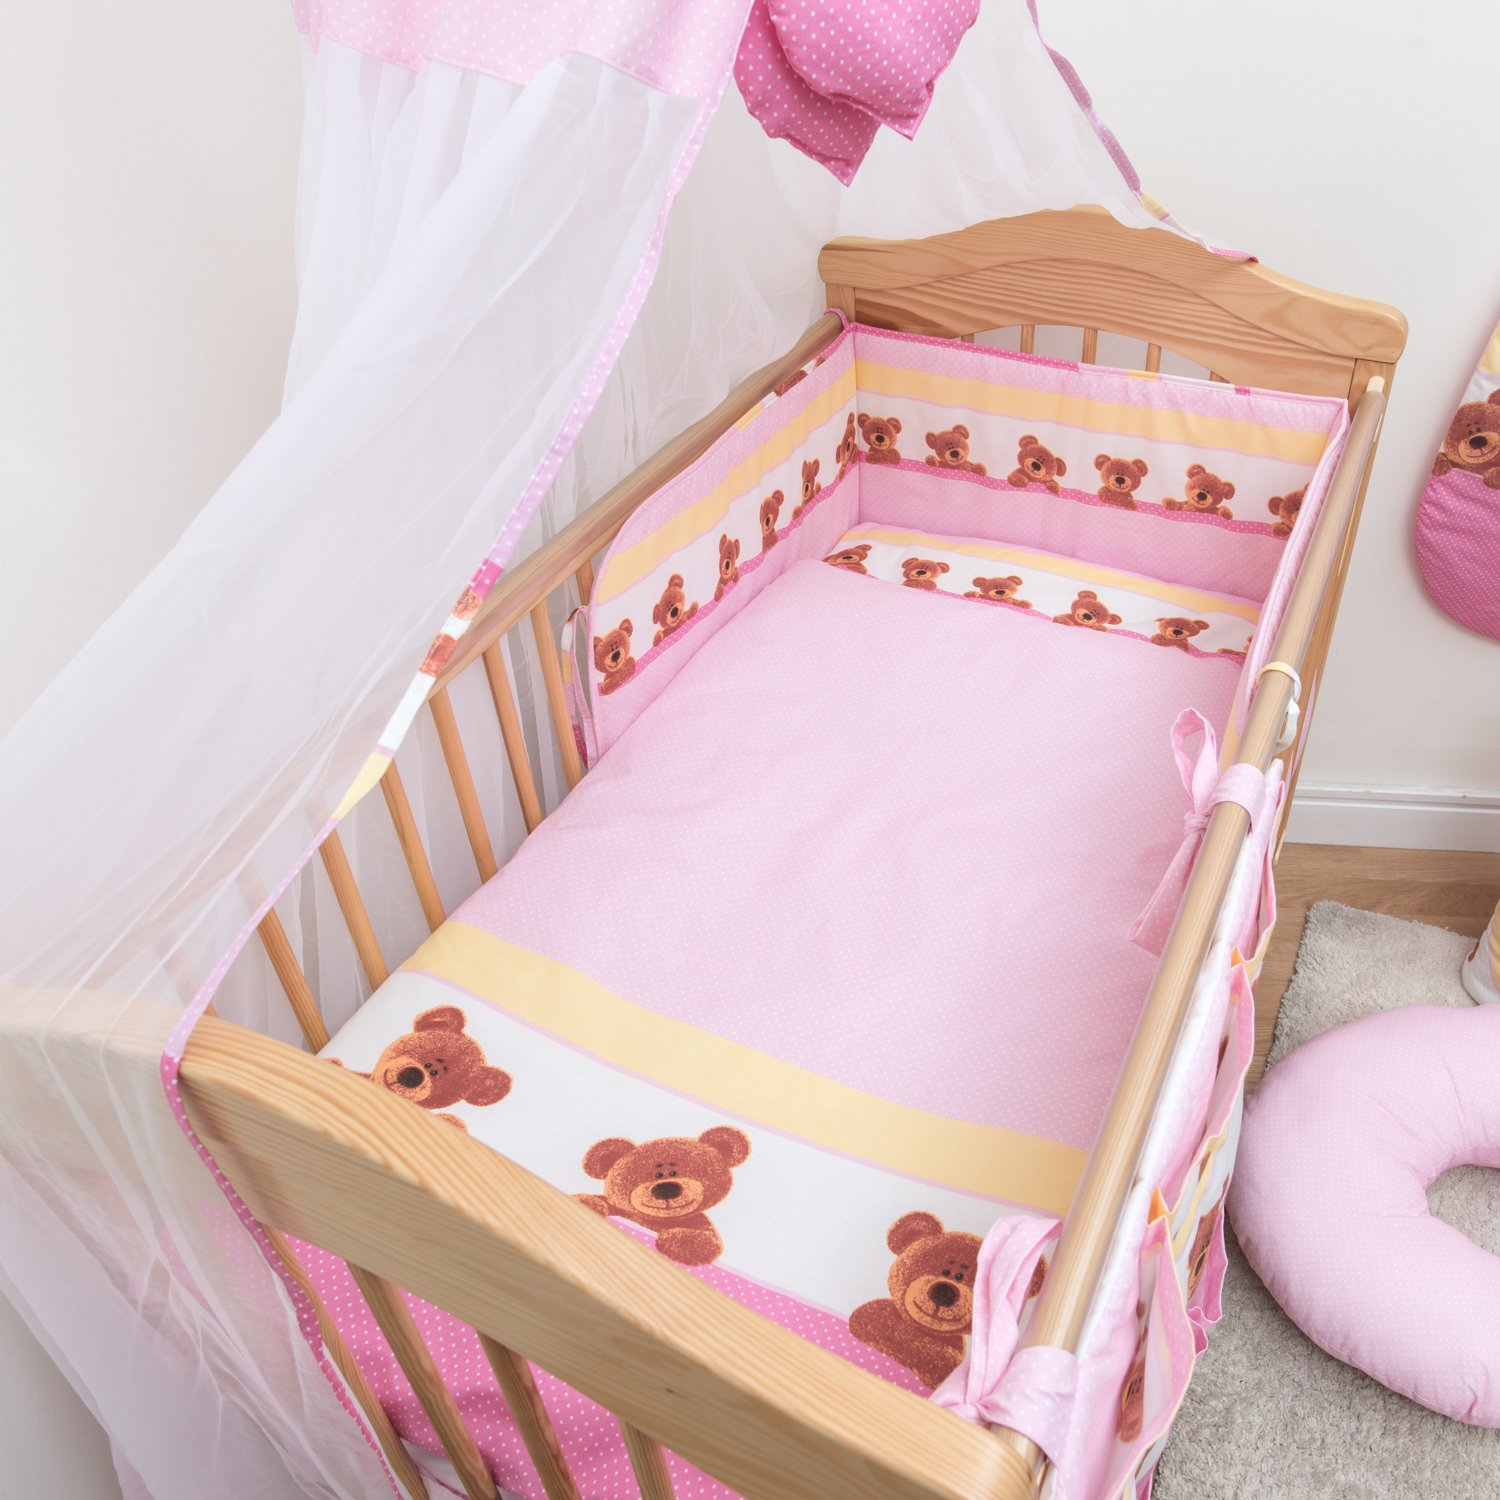 6 Pcs Cotton Baby Bedding, Regular Bumper Set 180cm/Cot Bed 140x70cm - Pattern 8 Baby Comfort